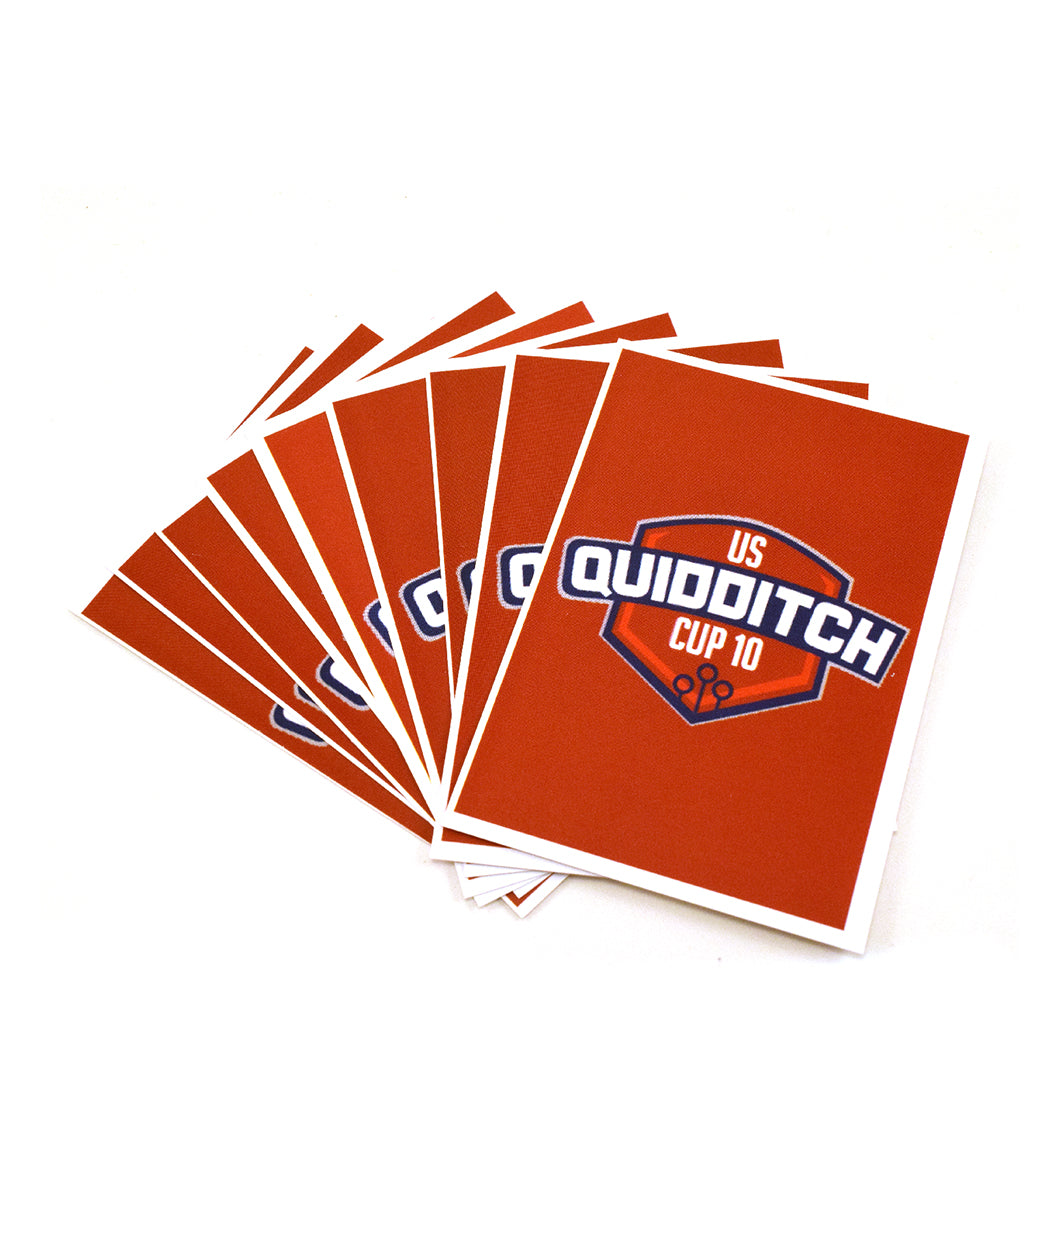 US Quidditch Trading Cards